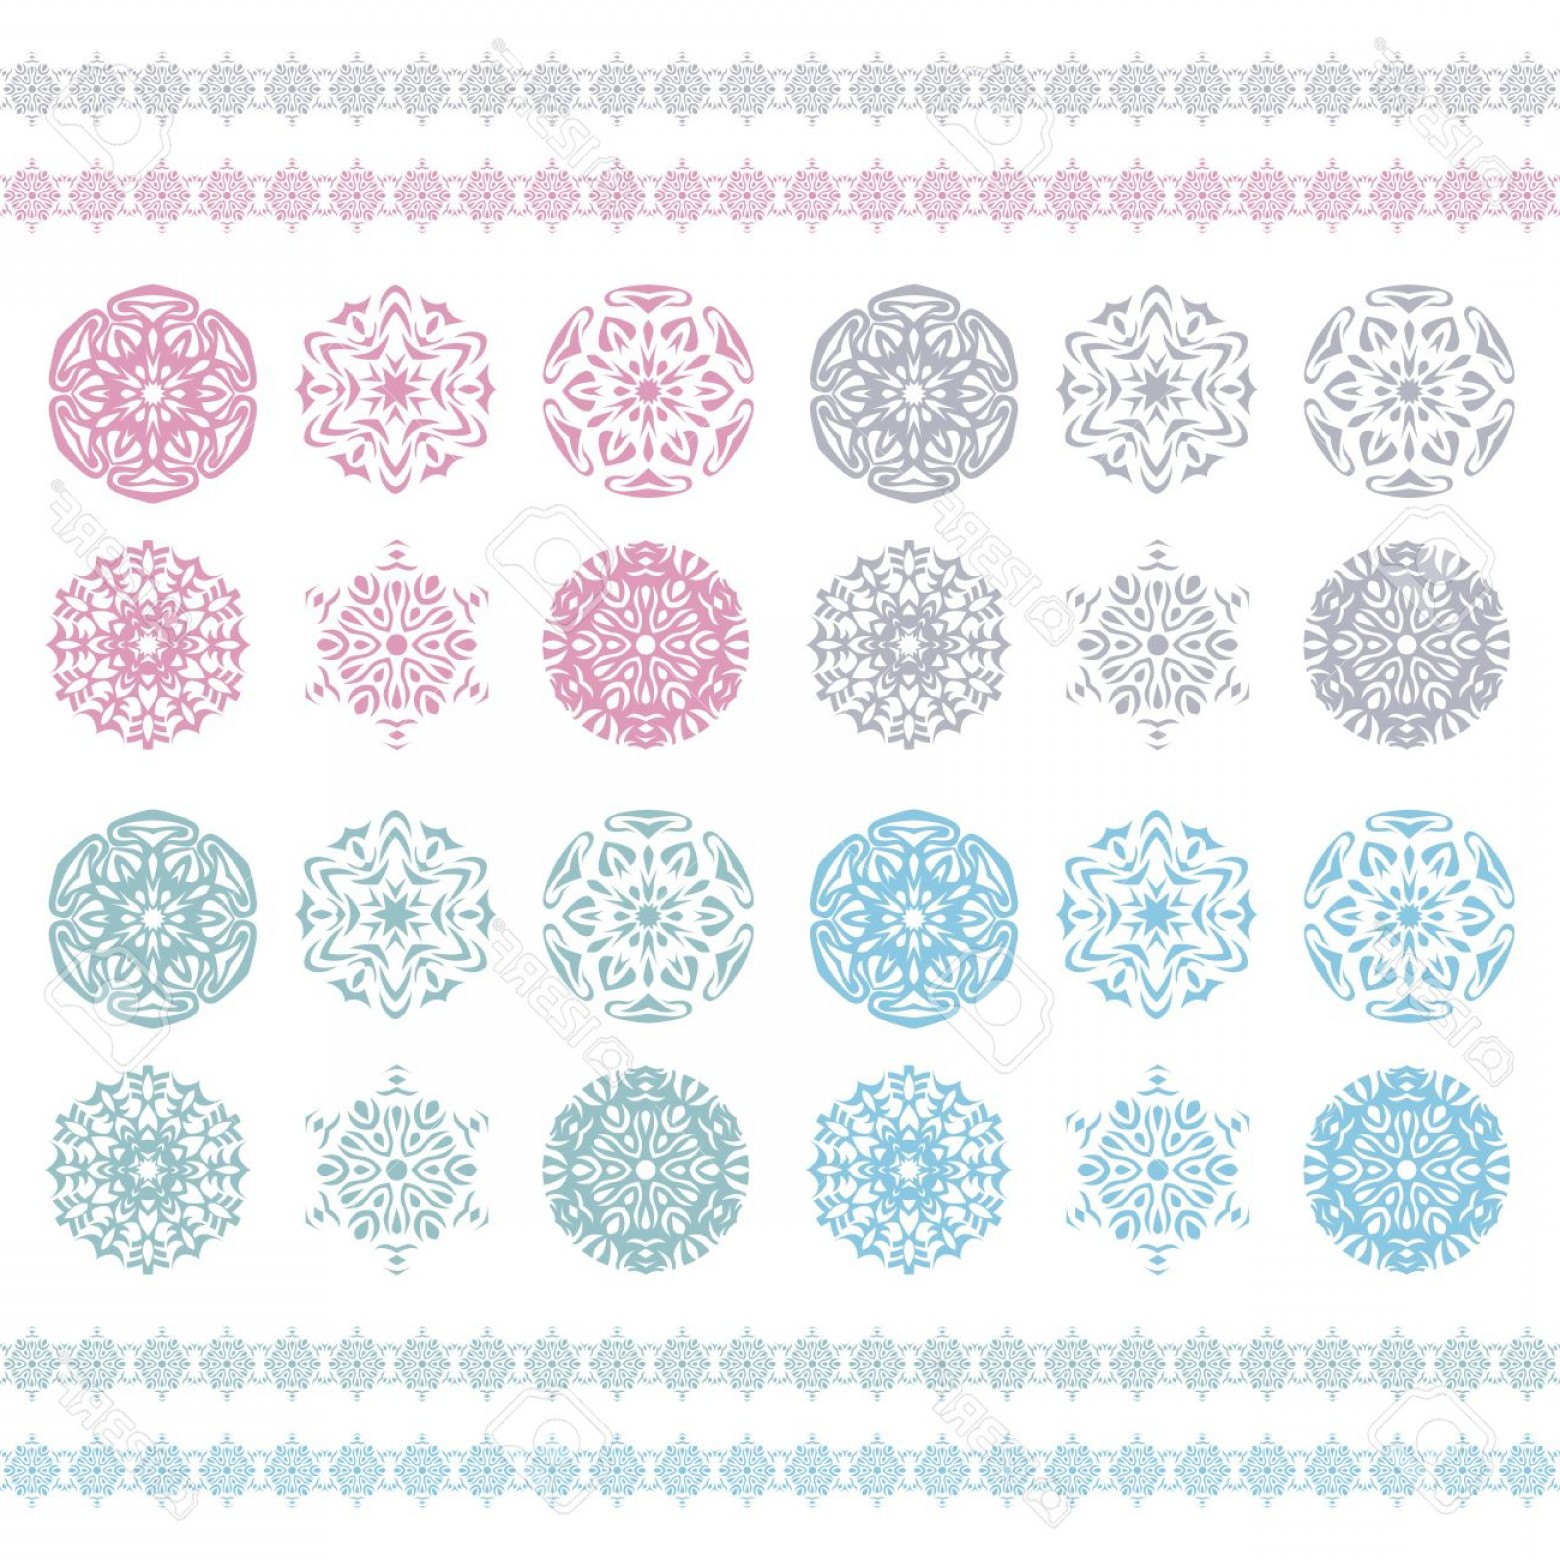 Snowflake Border Vector Art: Photochristmas Background Snowflakes Pattern Snow Flake Silhouette Pastel Ornament Snowflakes Border Holi